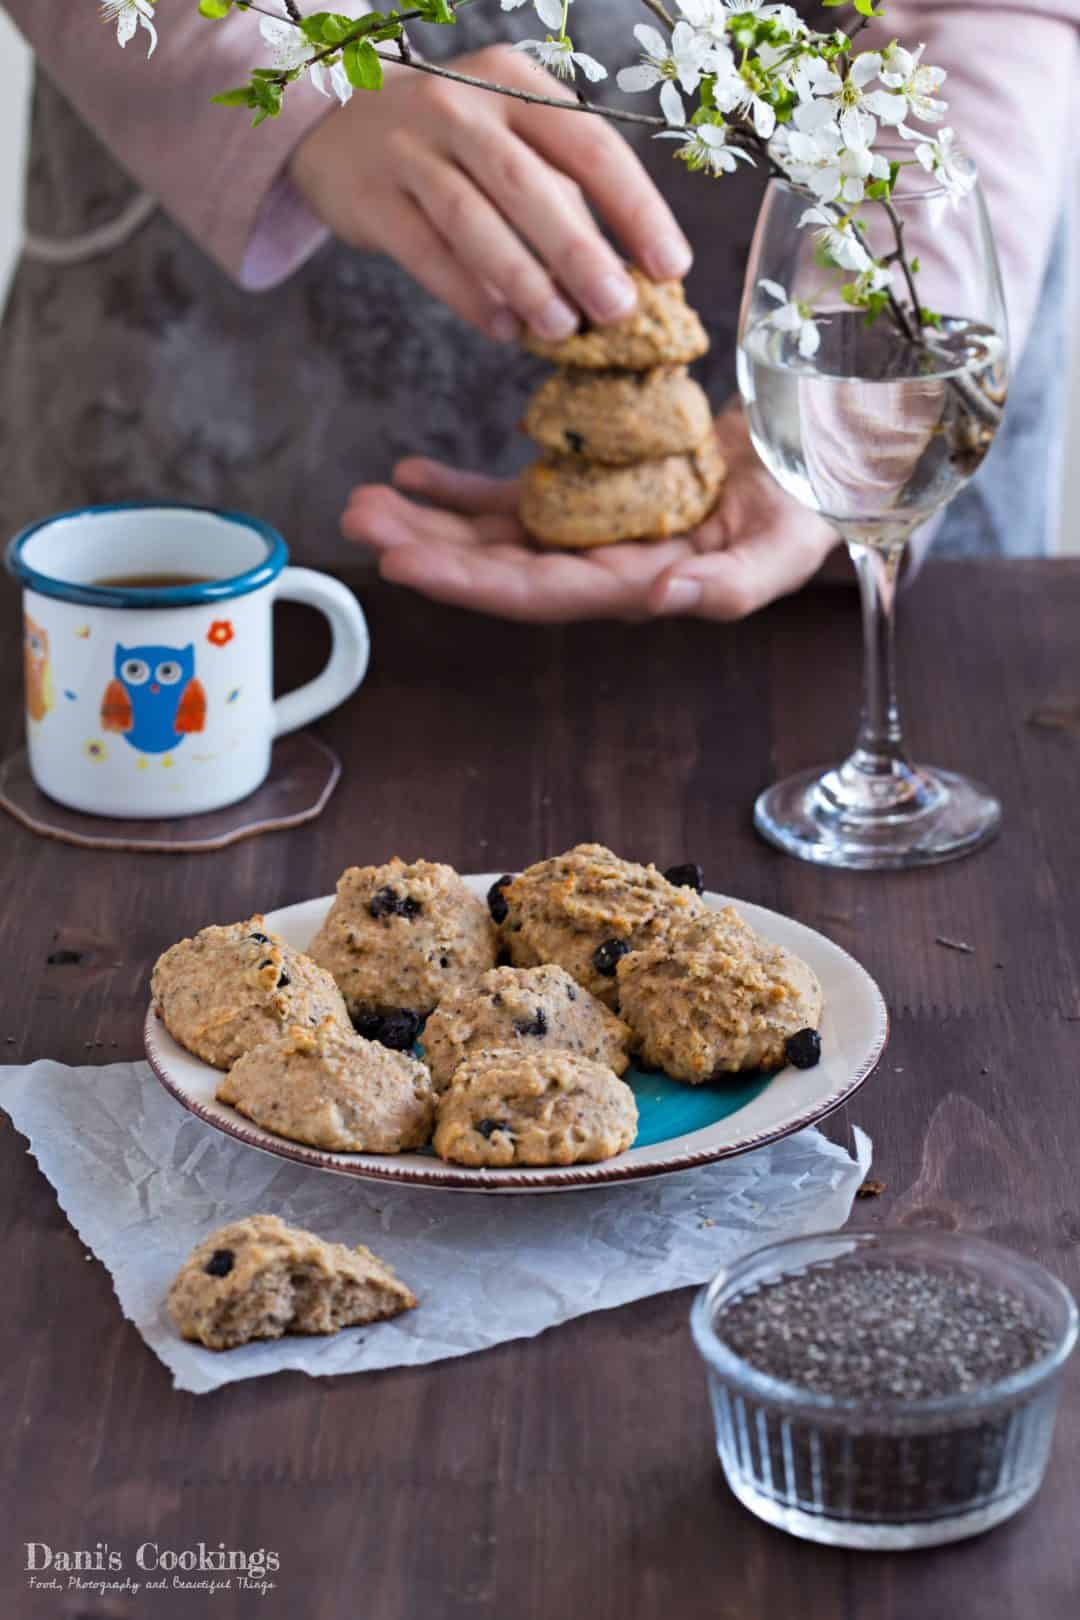 A plate with healthy breakfast cookies. Hands holding a stack in the background.